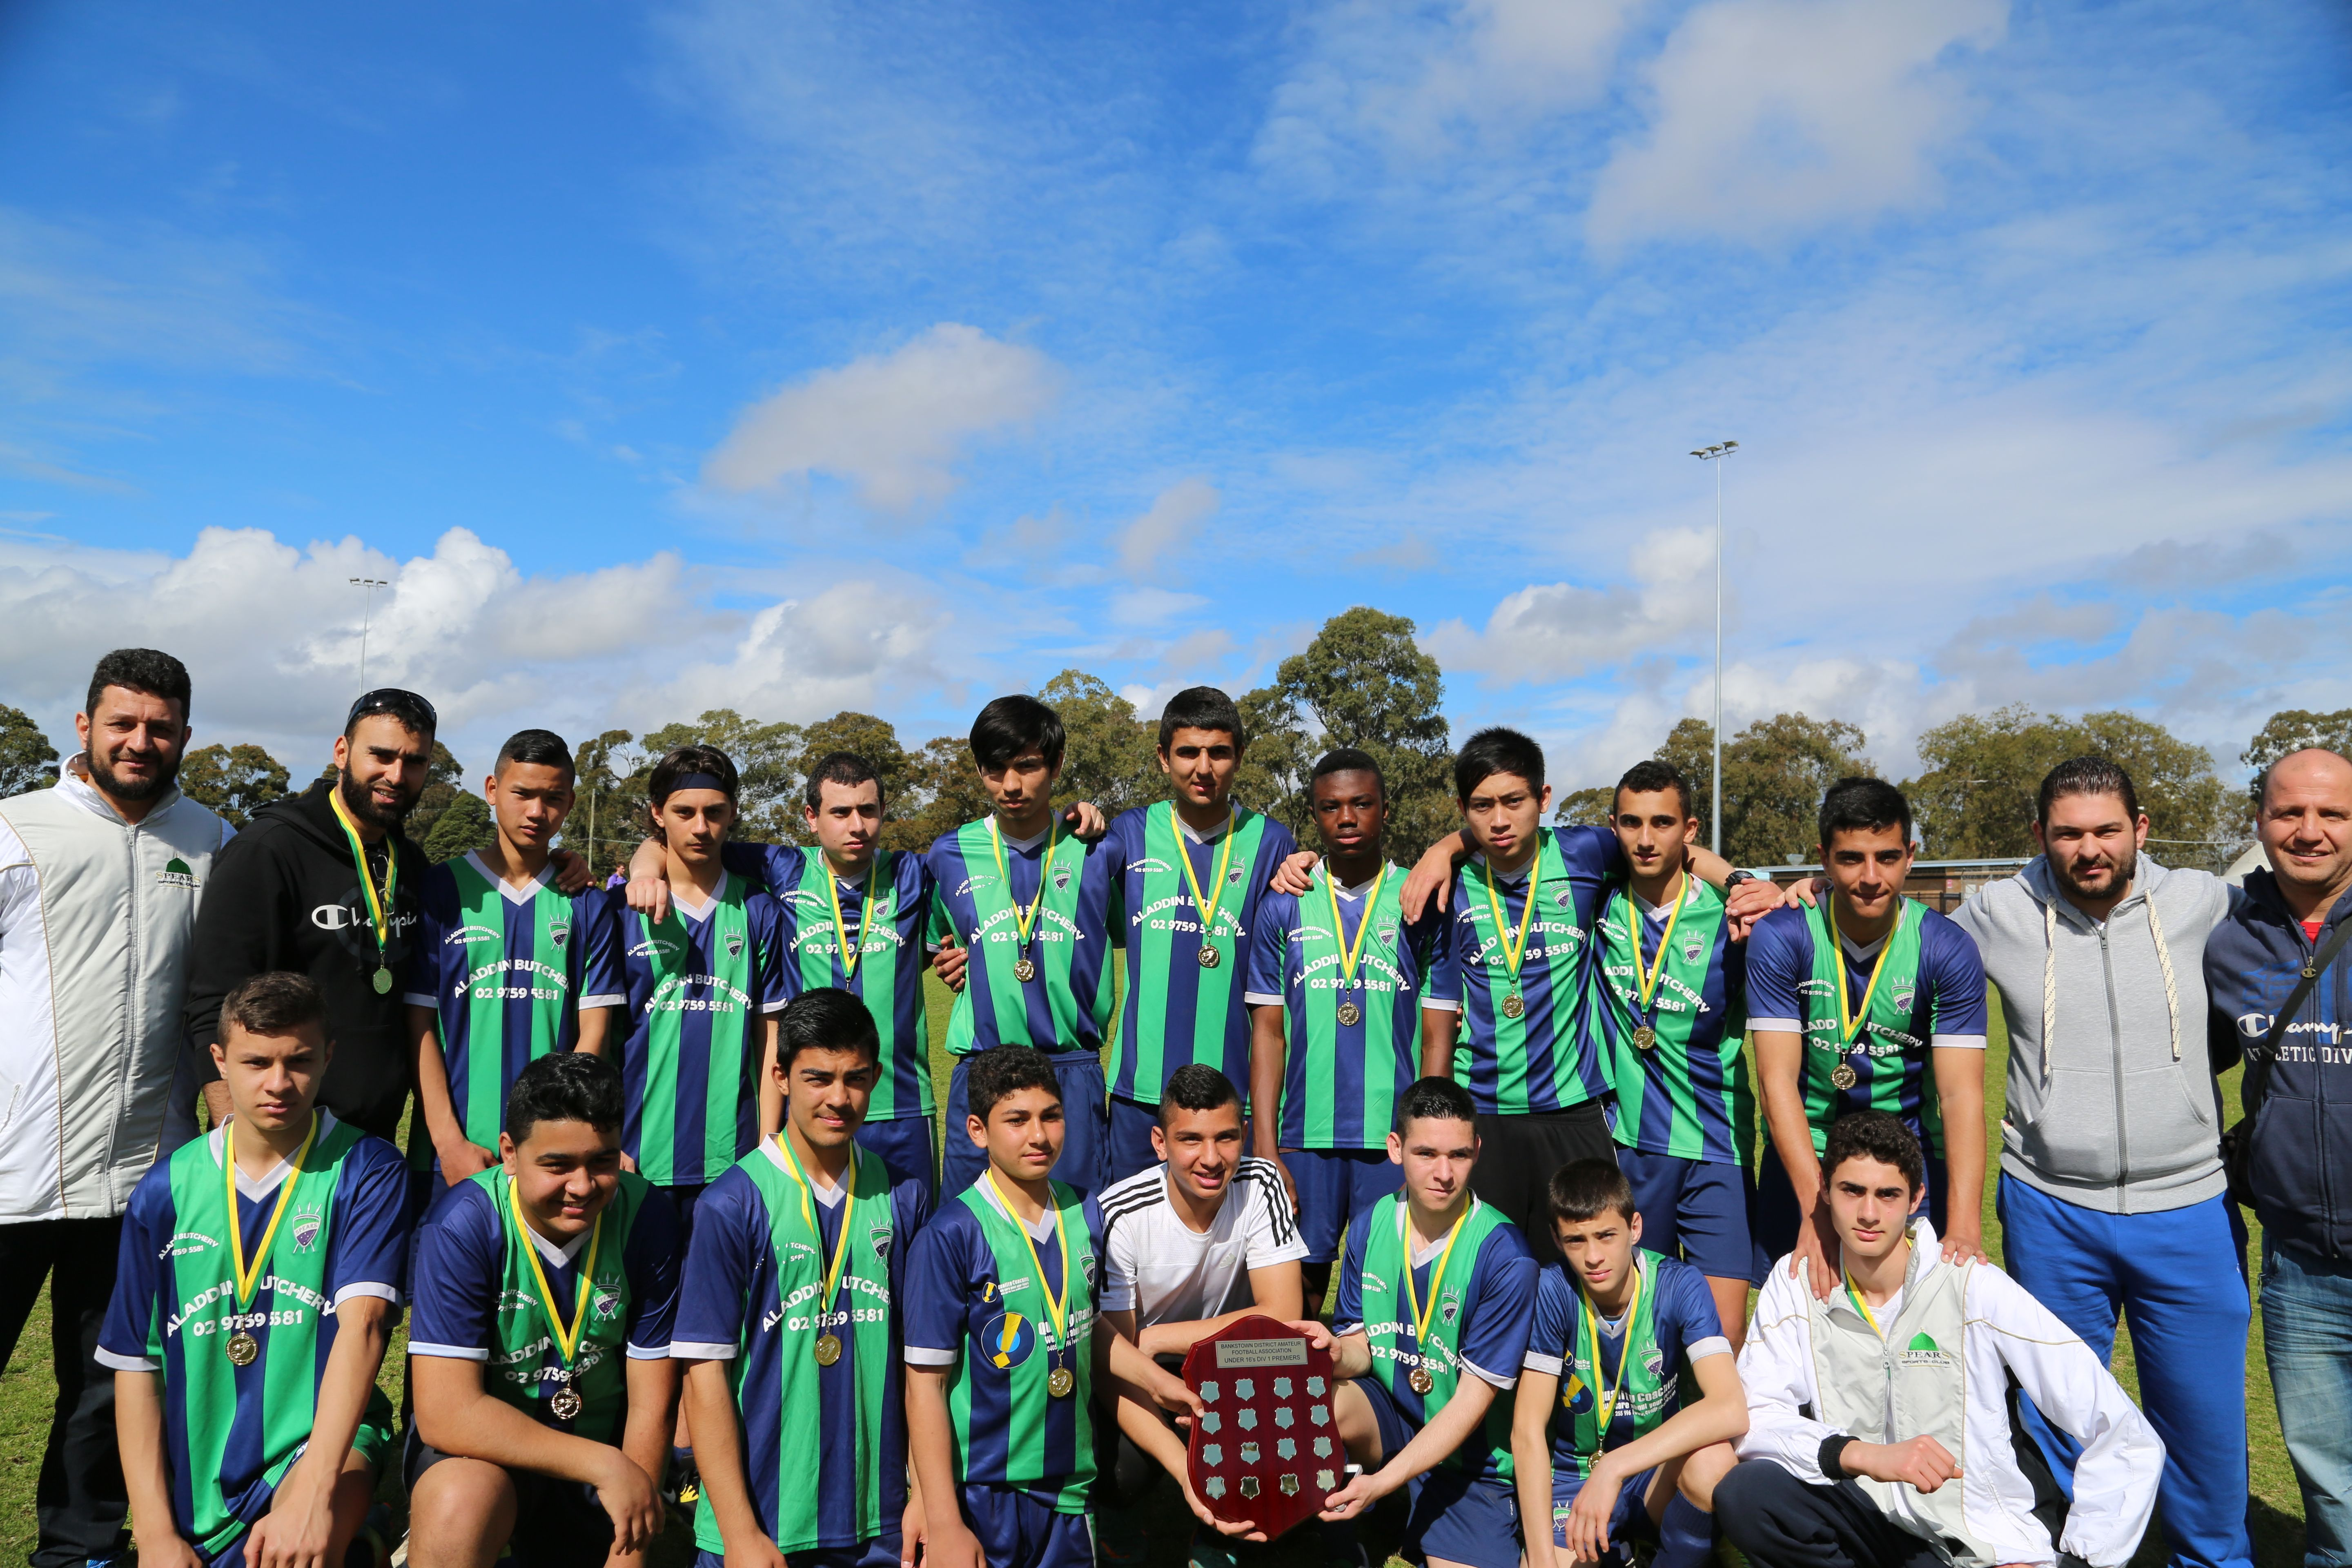 Spears Sports Club win the competition, Congratulations to